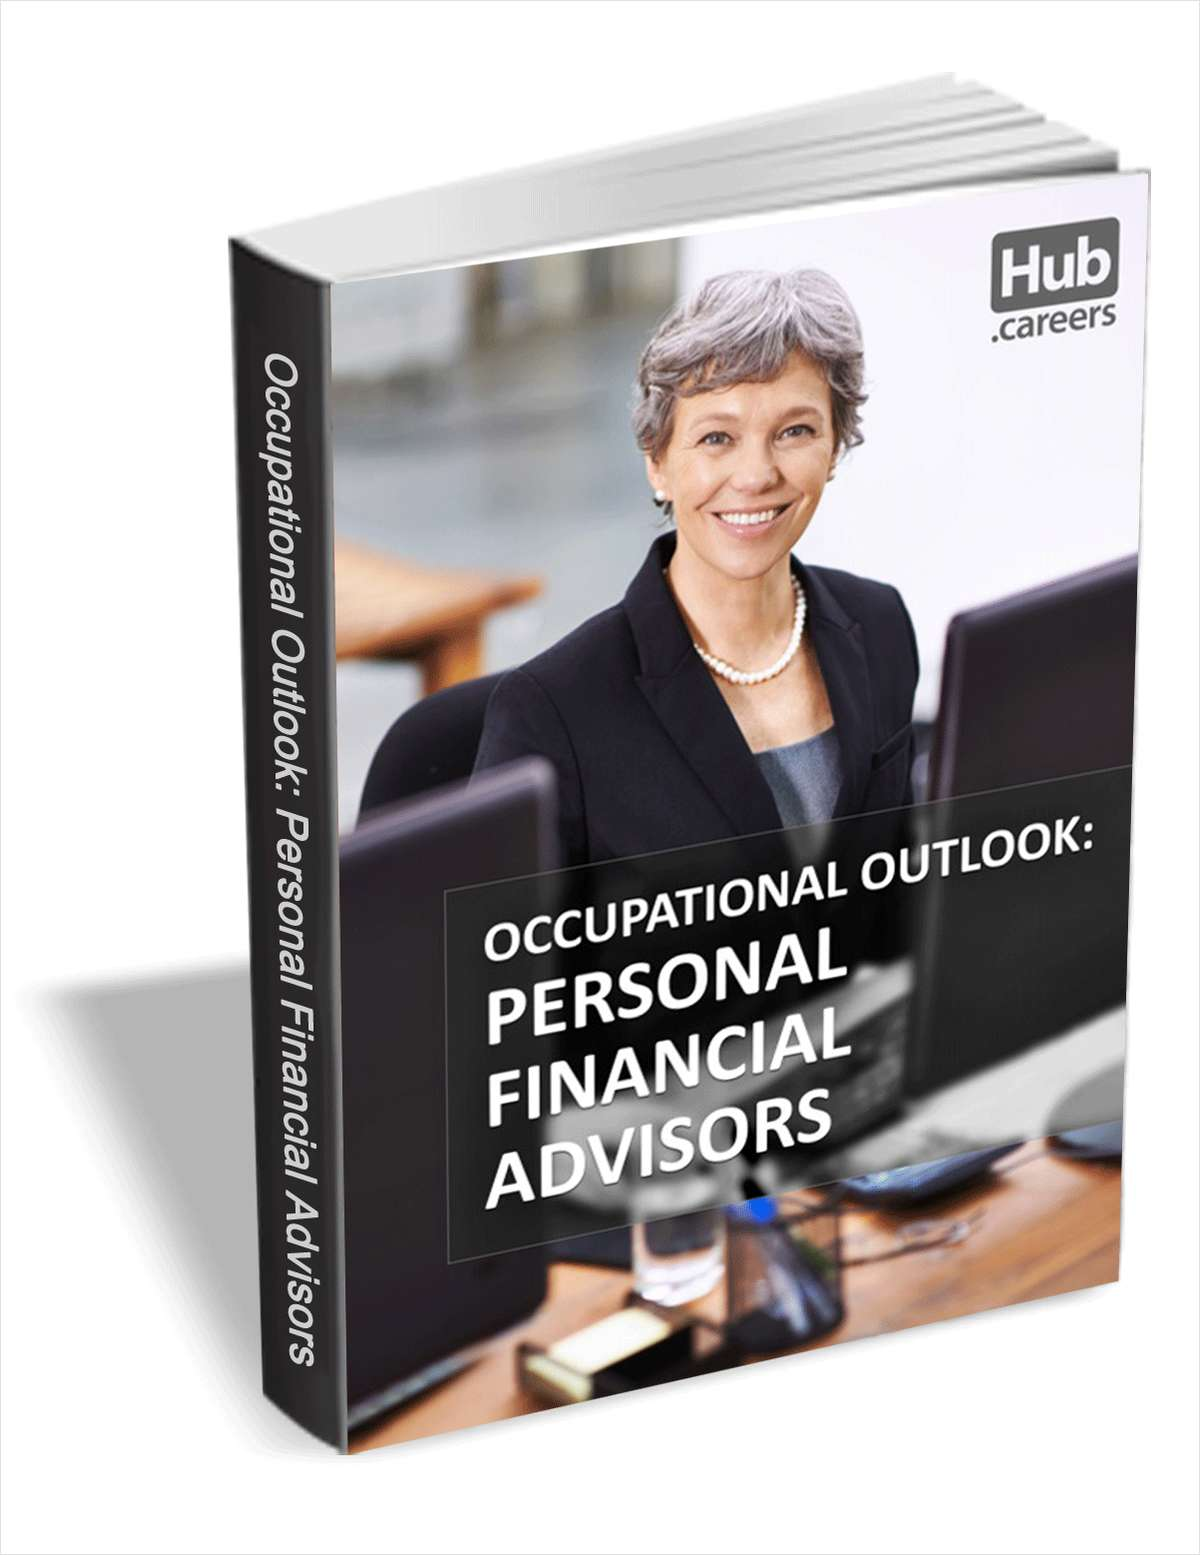 Personal Financial Advisors - Occupational Outlook